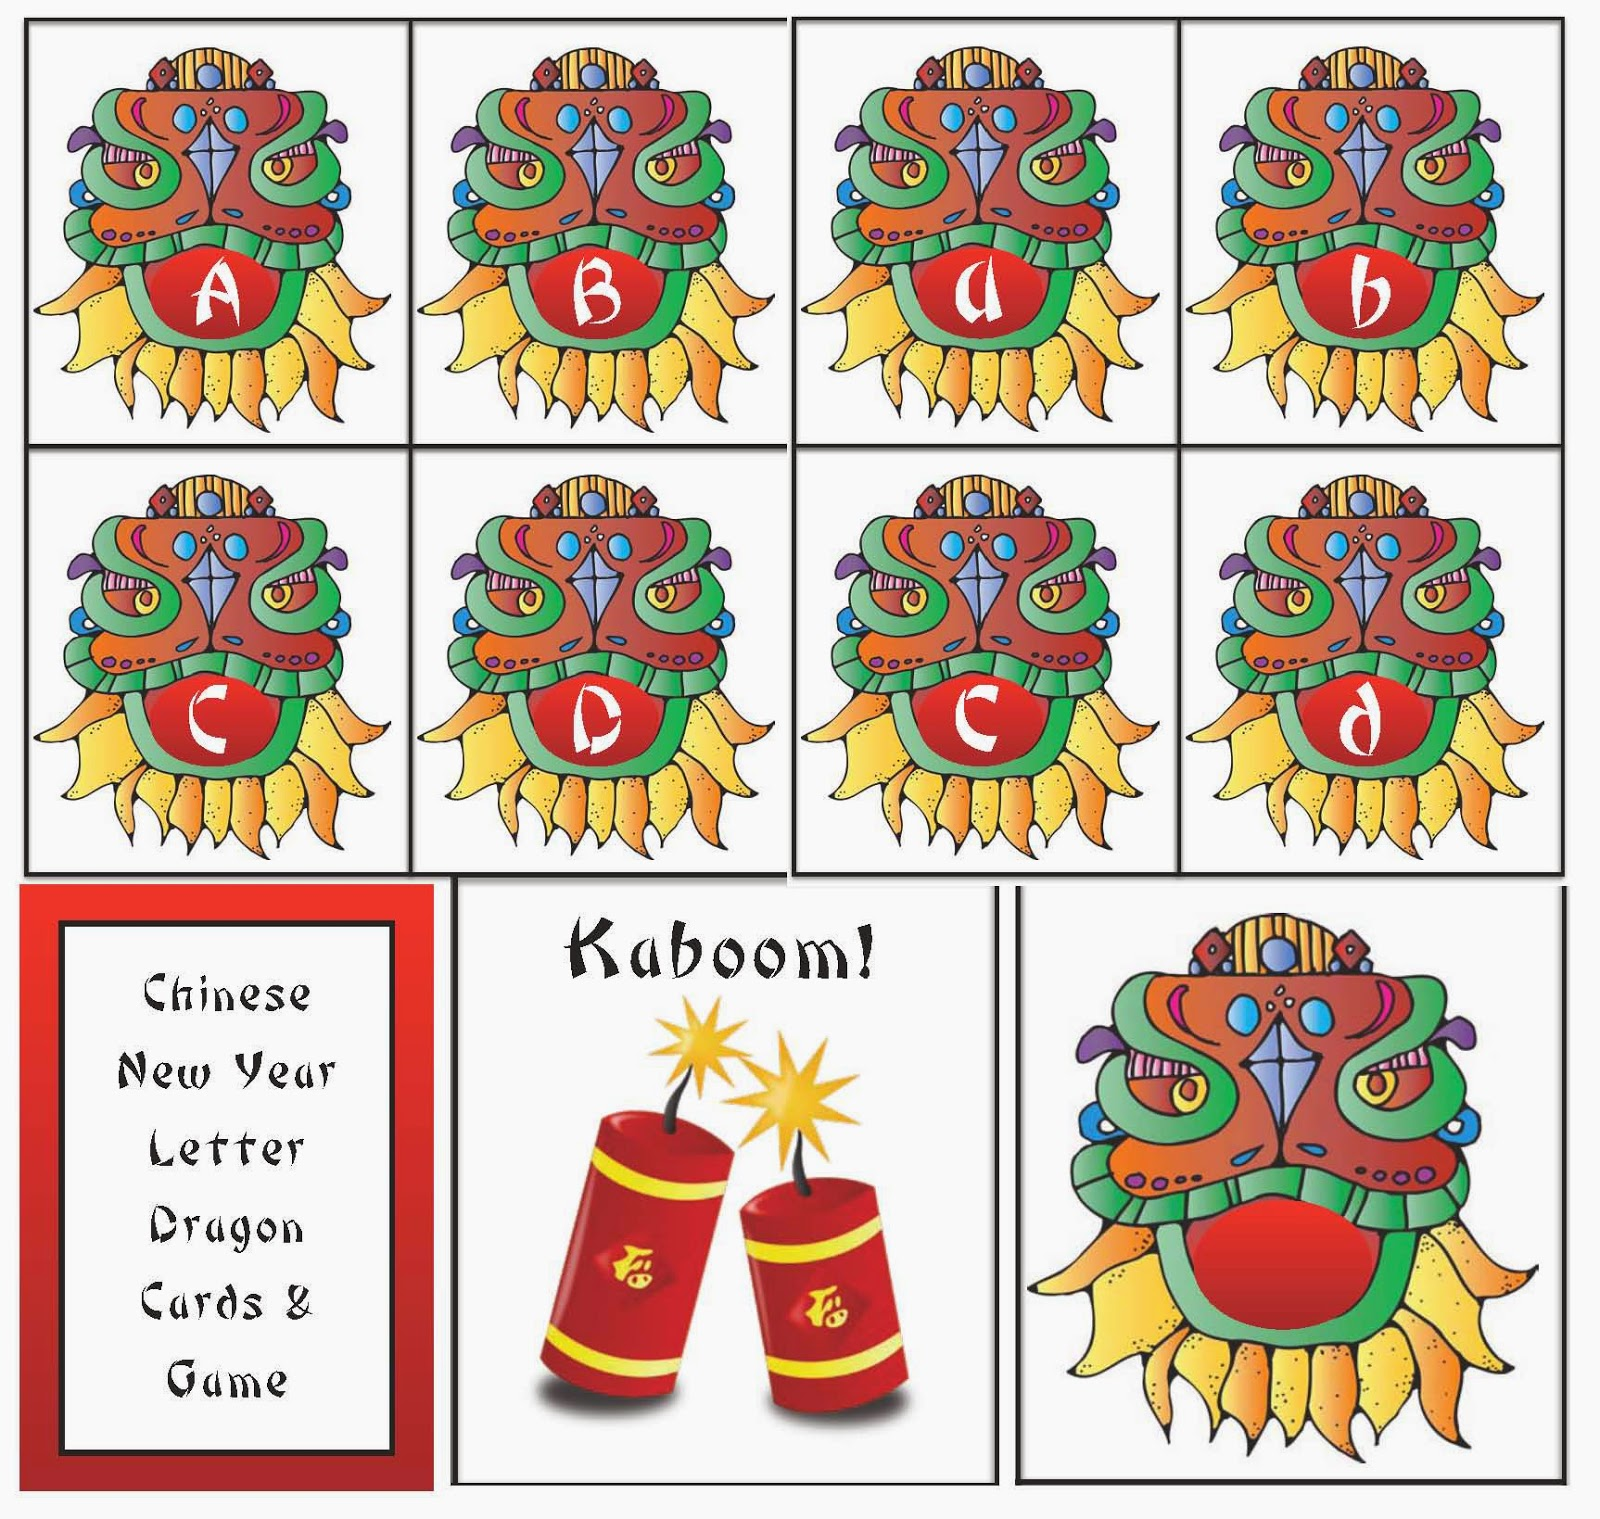 Classroom Freebies: Chinese New Year Animal Card Games.